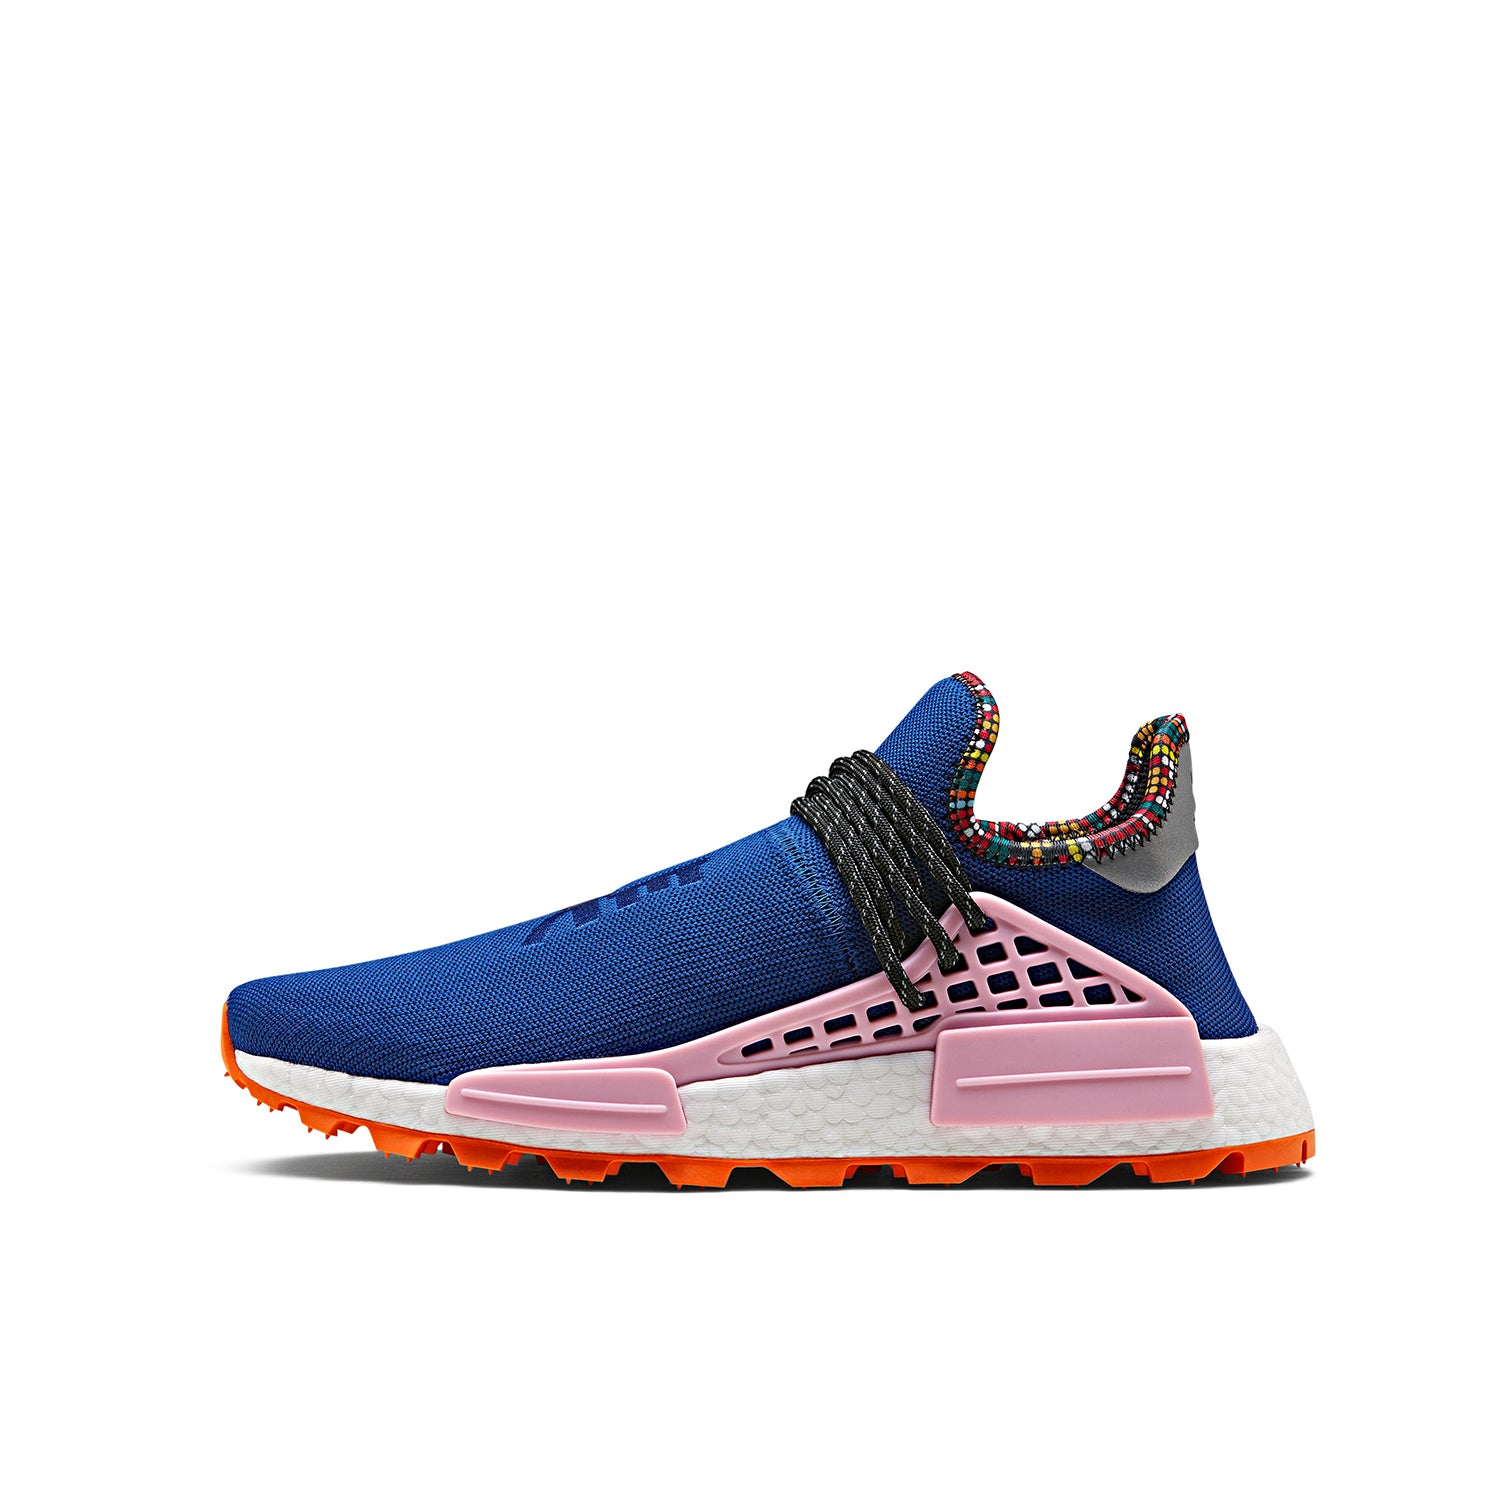 36758fedd6d6 adidas Originals x Pharrell Williams  INSPIRATION  Solar HU NMD Powder  Blue. Tap to expand